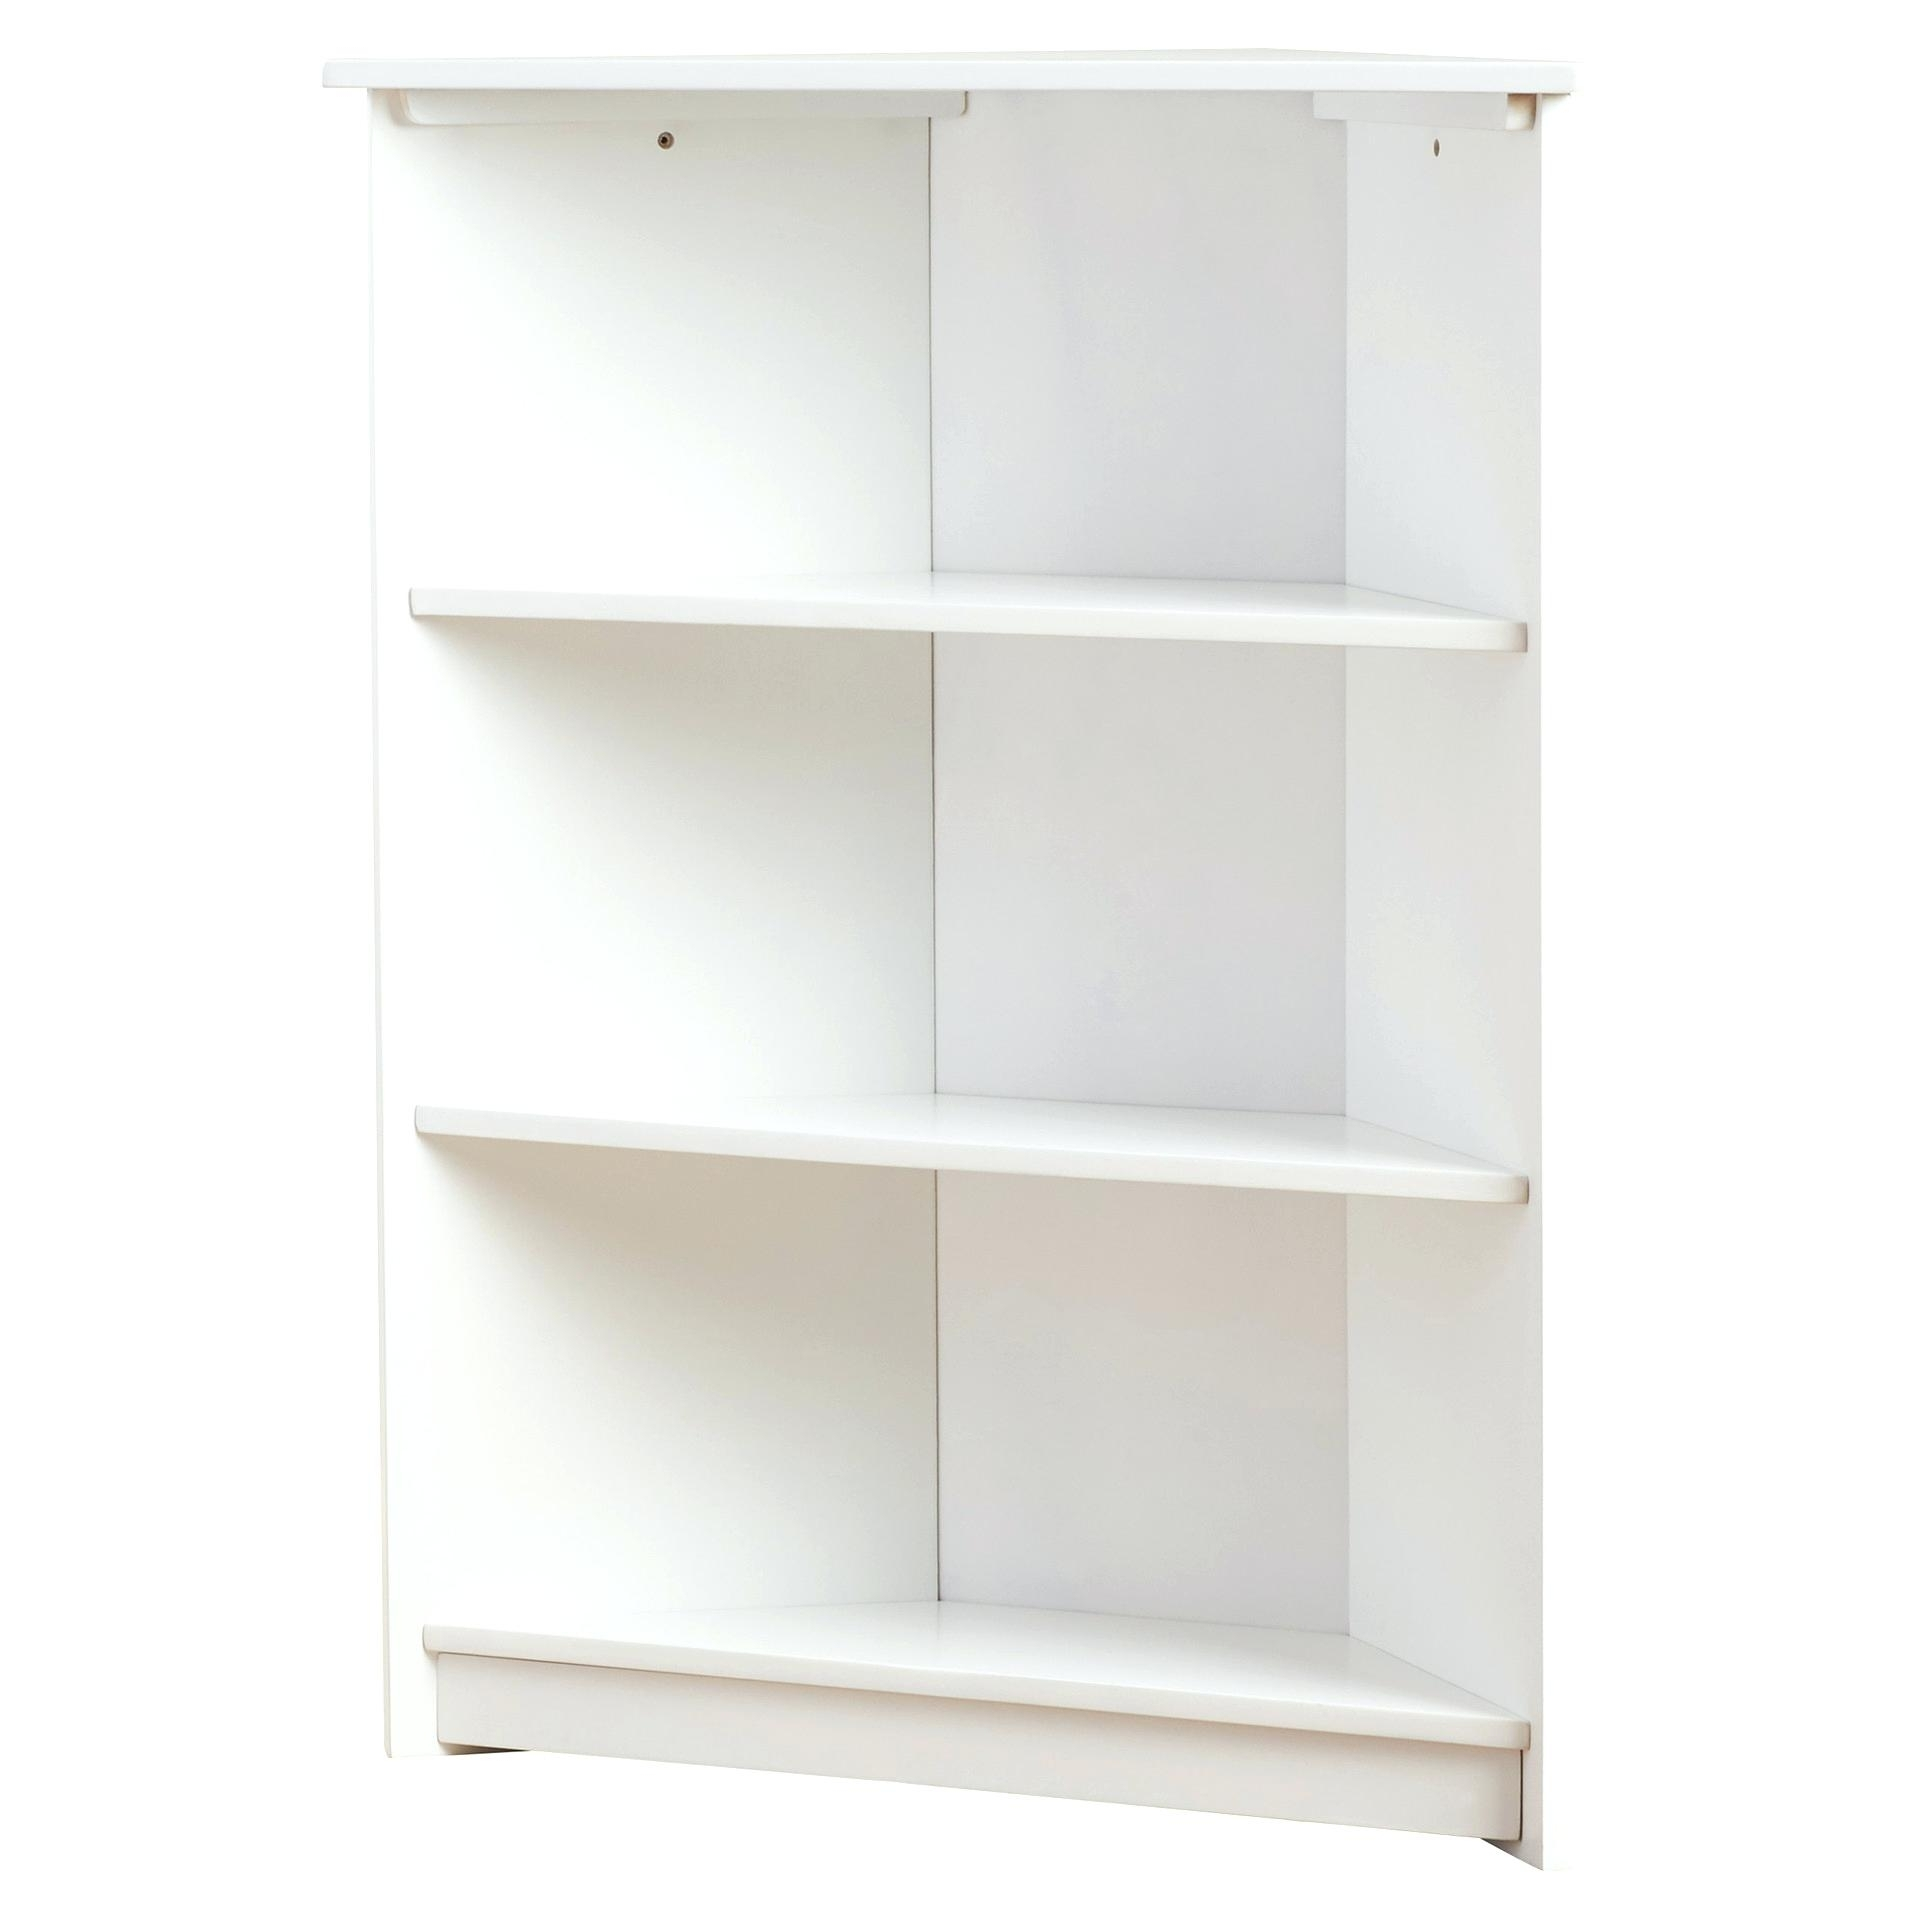 36 Inch Wide Bookcase 36 Wide Bookcase With Doors 36 Inch Wide For Most Up To Date 36 Inch Wide Bookcases (View 10 of 15)